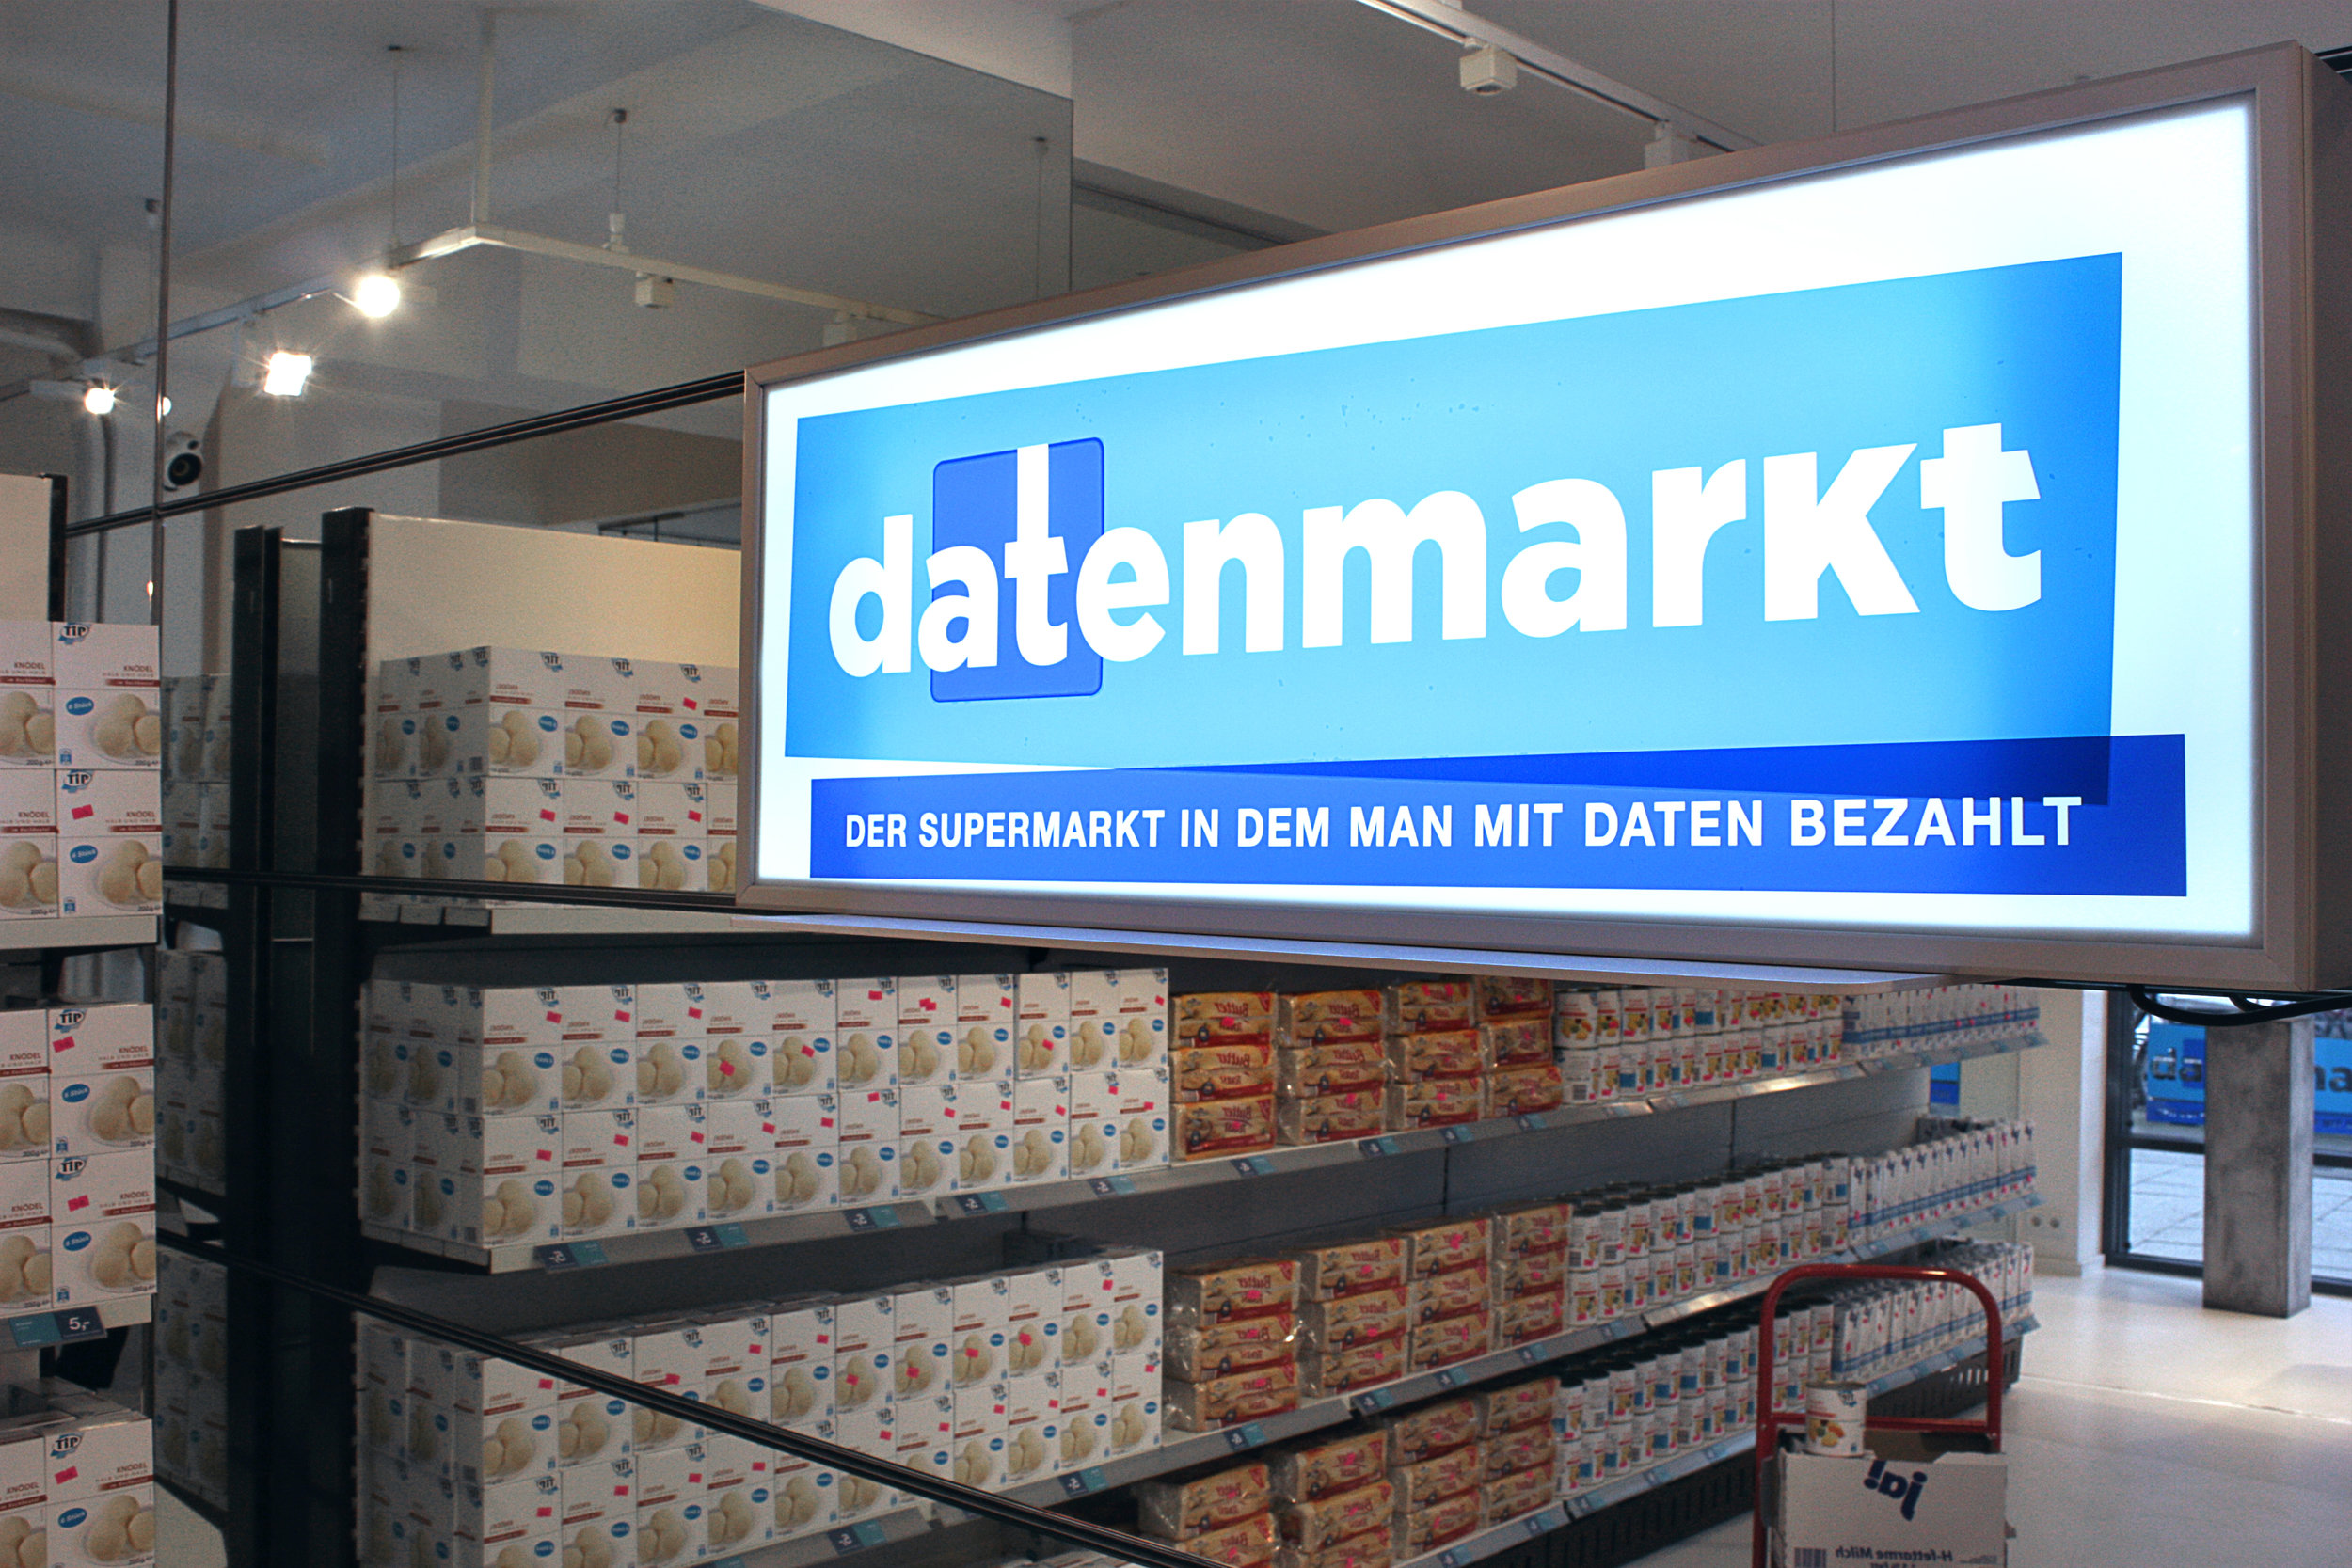 Datenmarkt_Photo_1.jpg